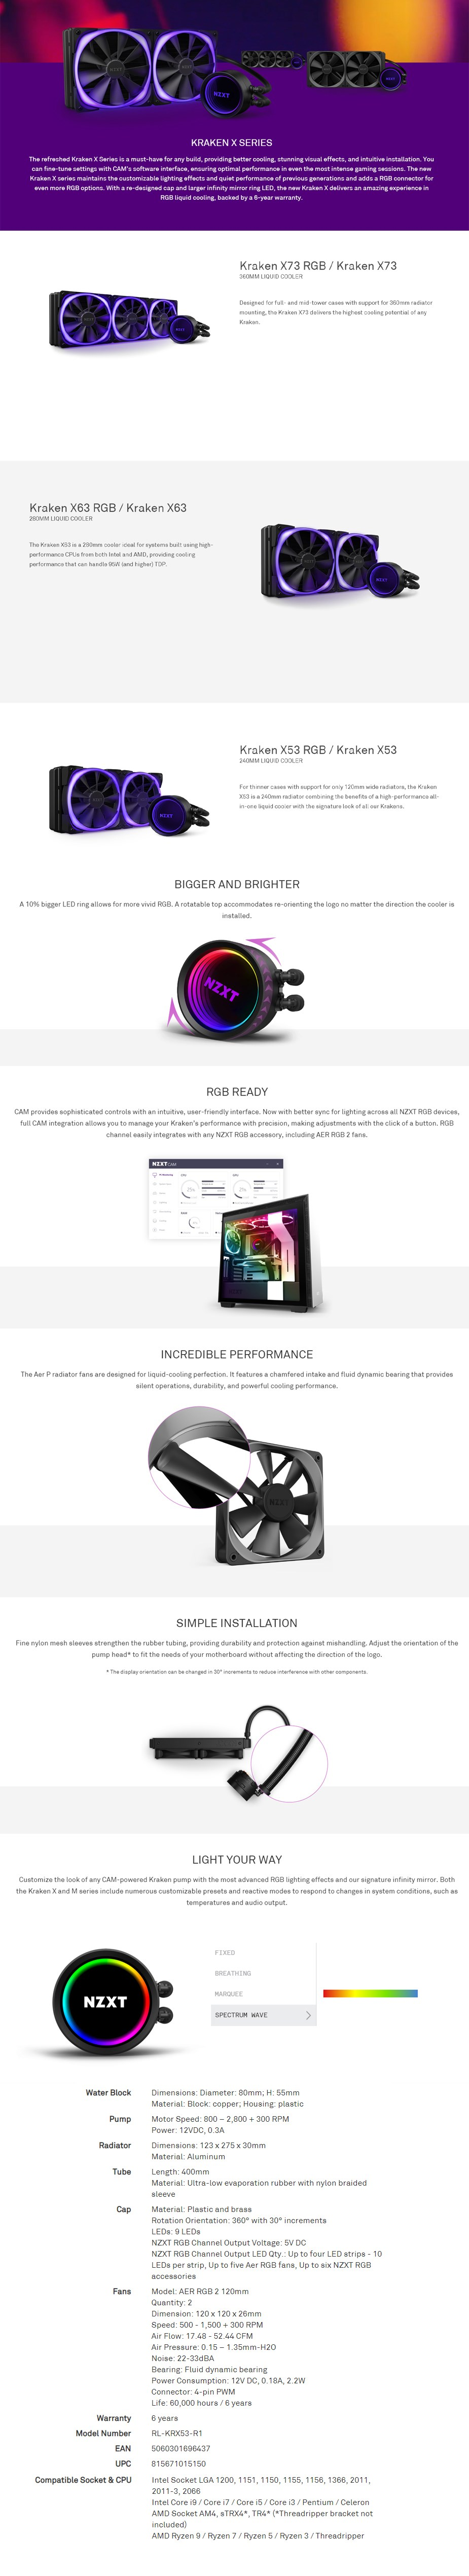 NZXT Kraken X53 240mm RGB AIO Liquid CPU Cooler - Overview 1